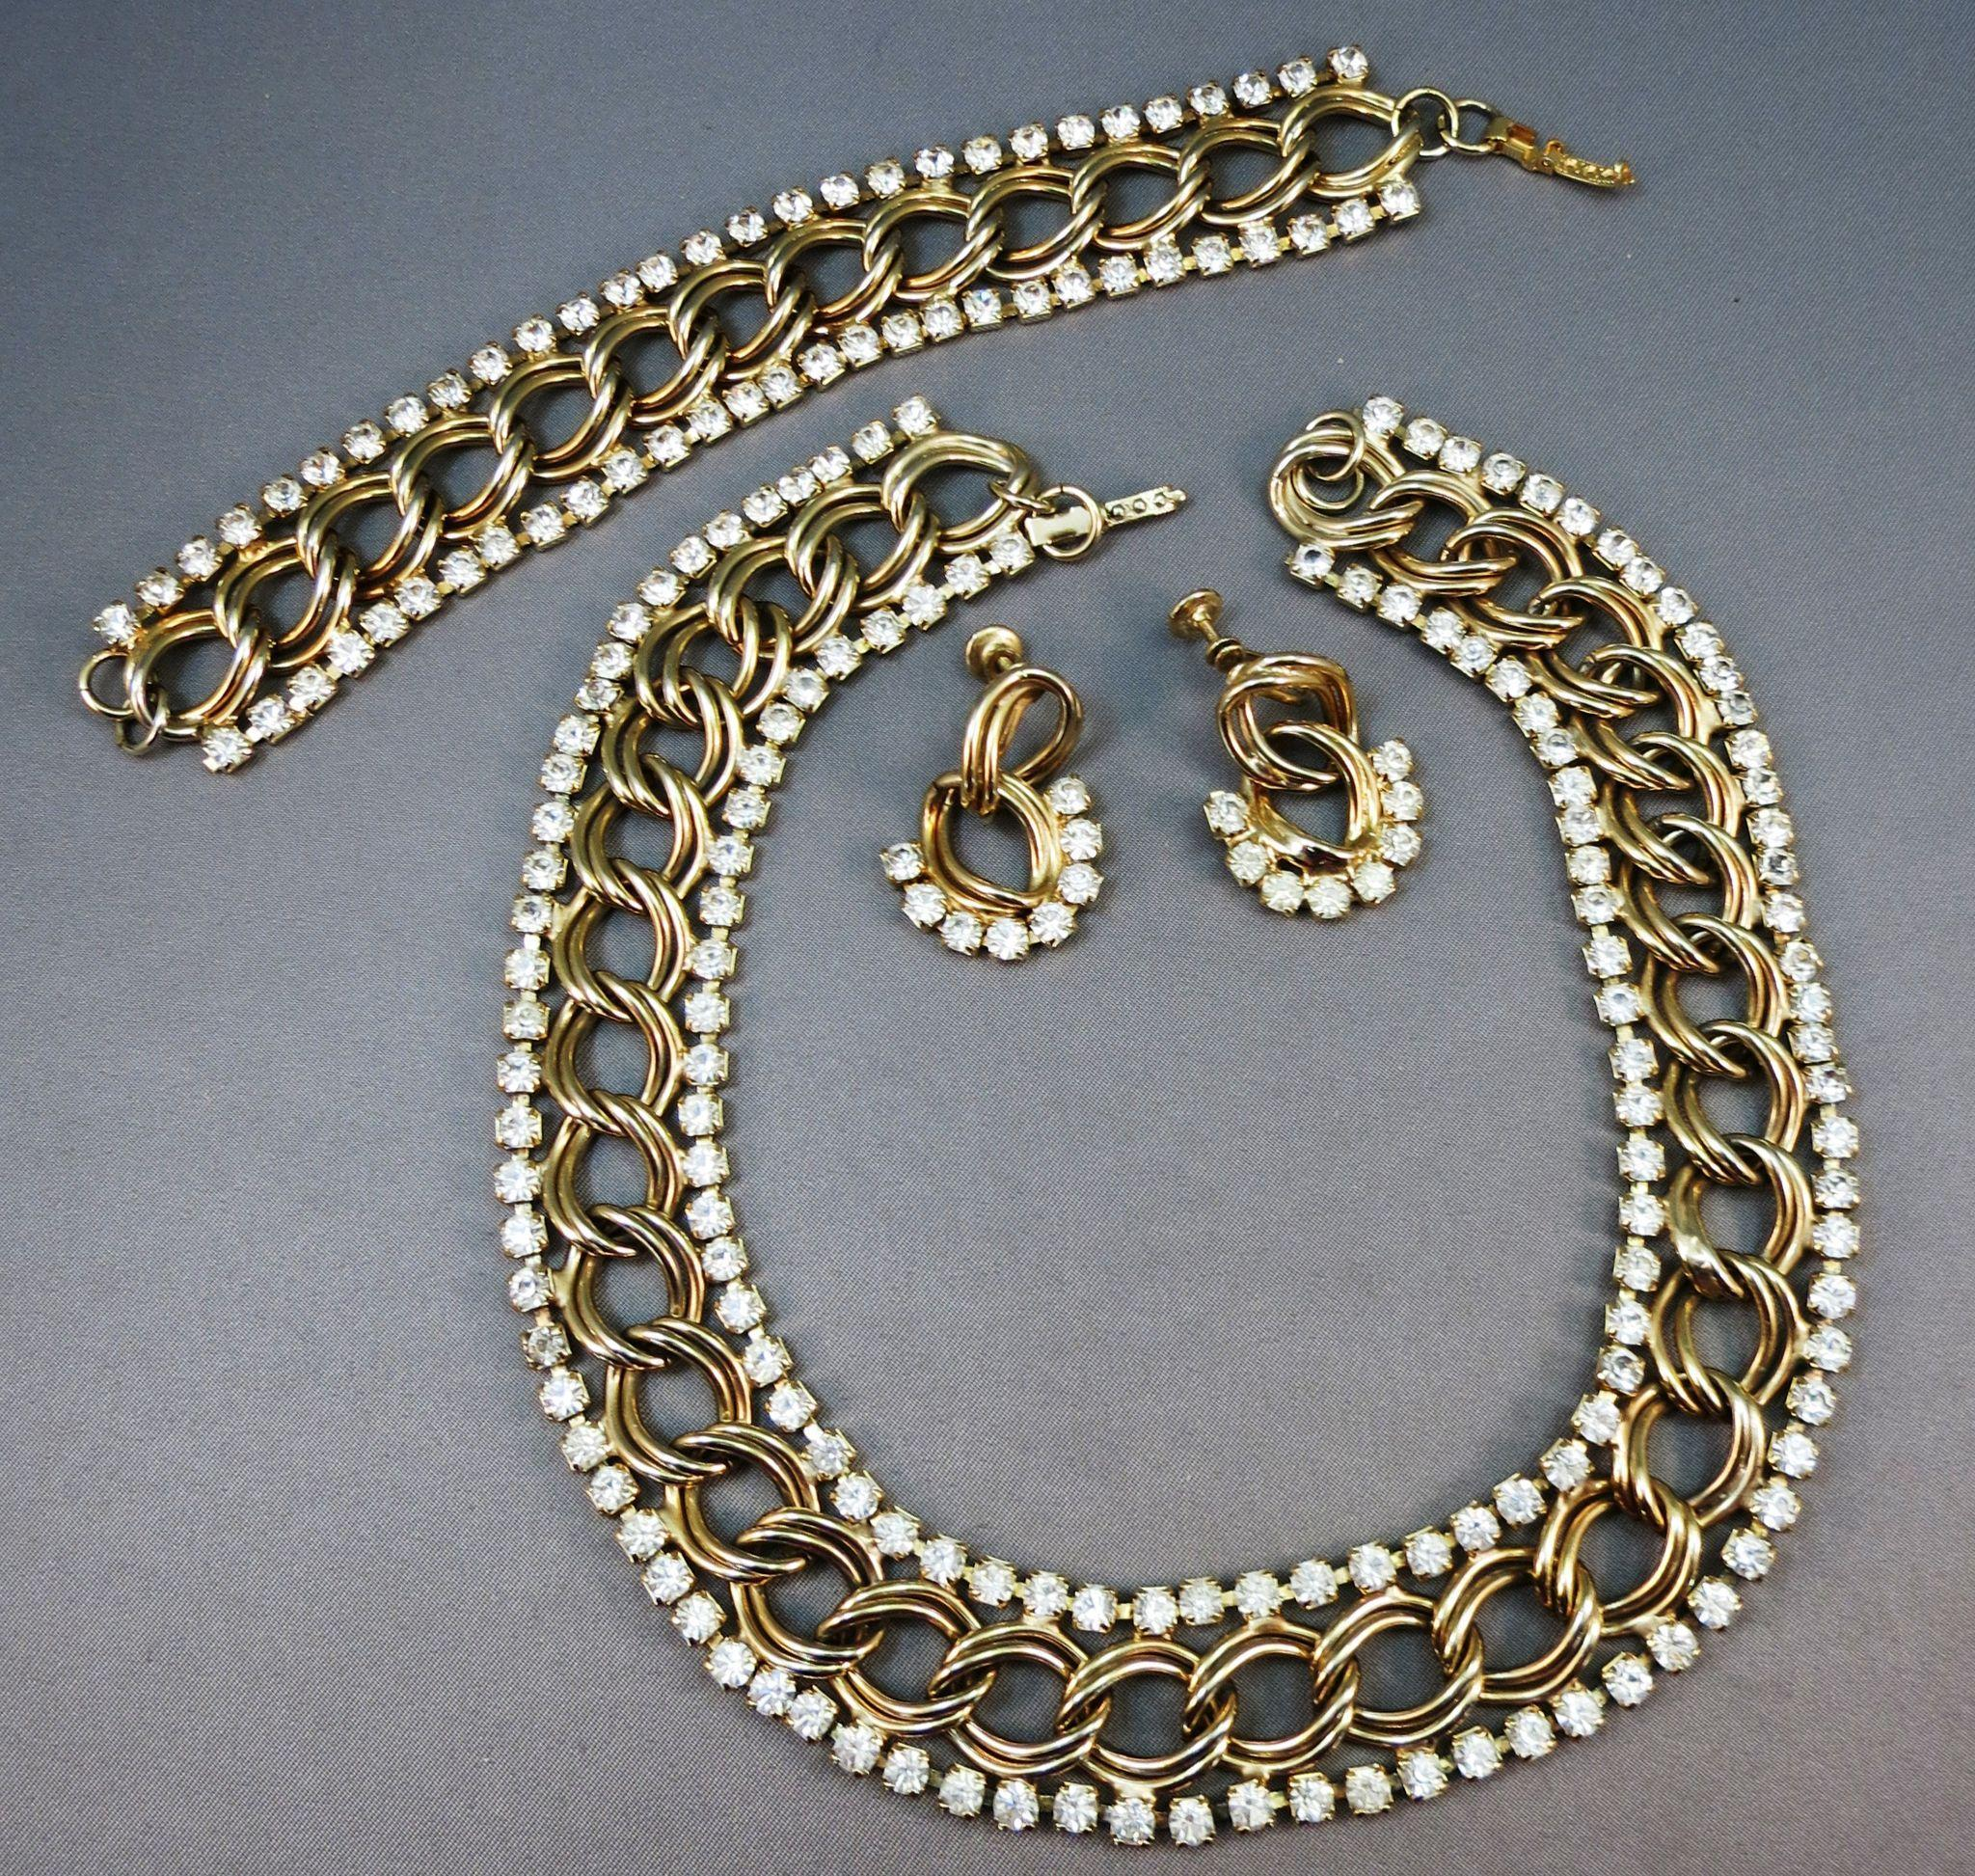 VINTAGE Unsigned Parure Golden Chains and Rhinestones 3 Pieces